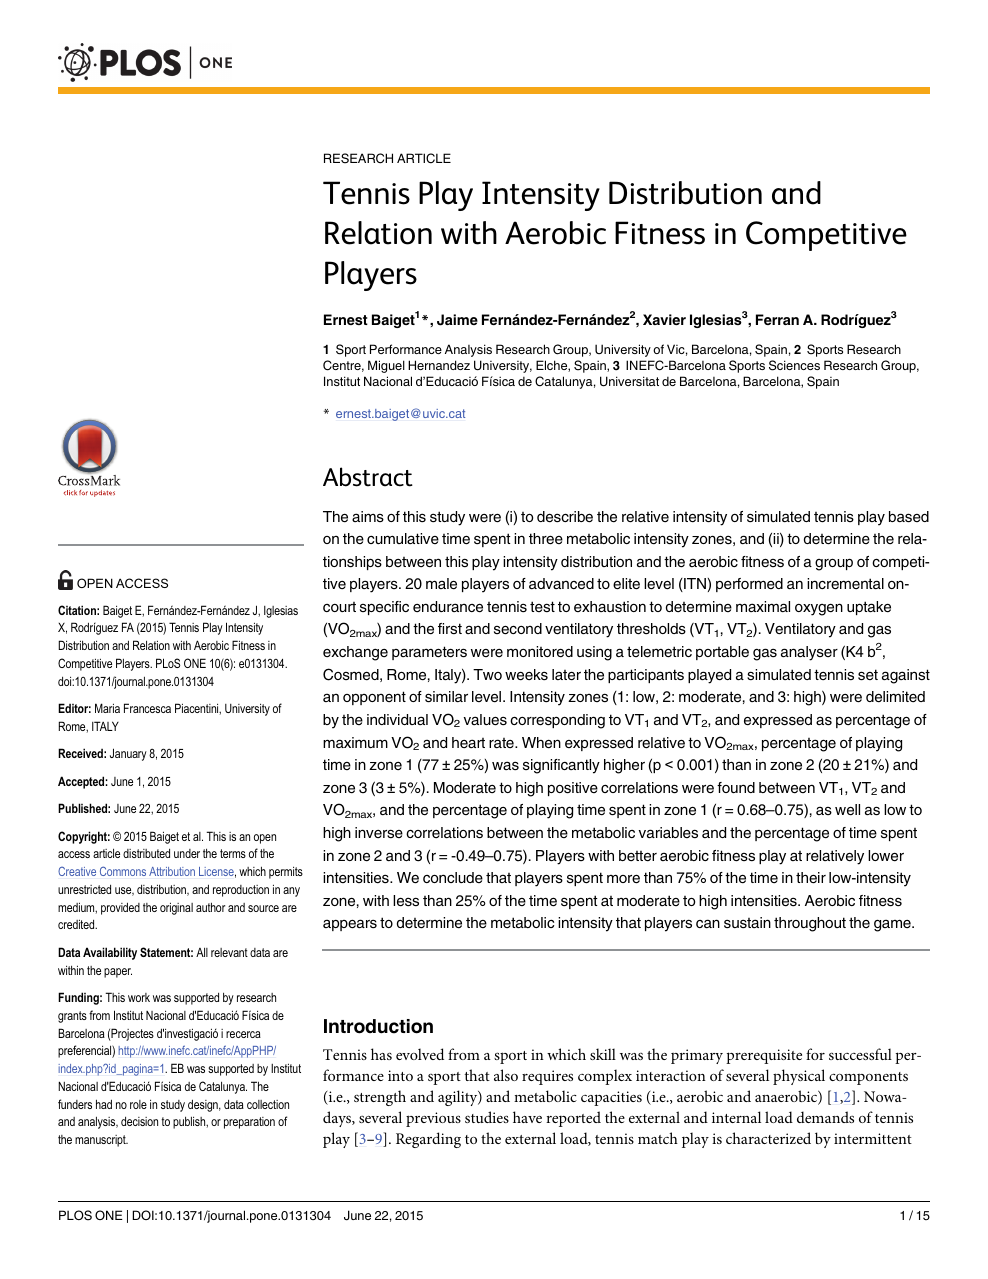 Tennis Play Intensity Distribution and Relation with Aerobic